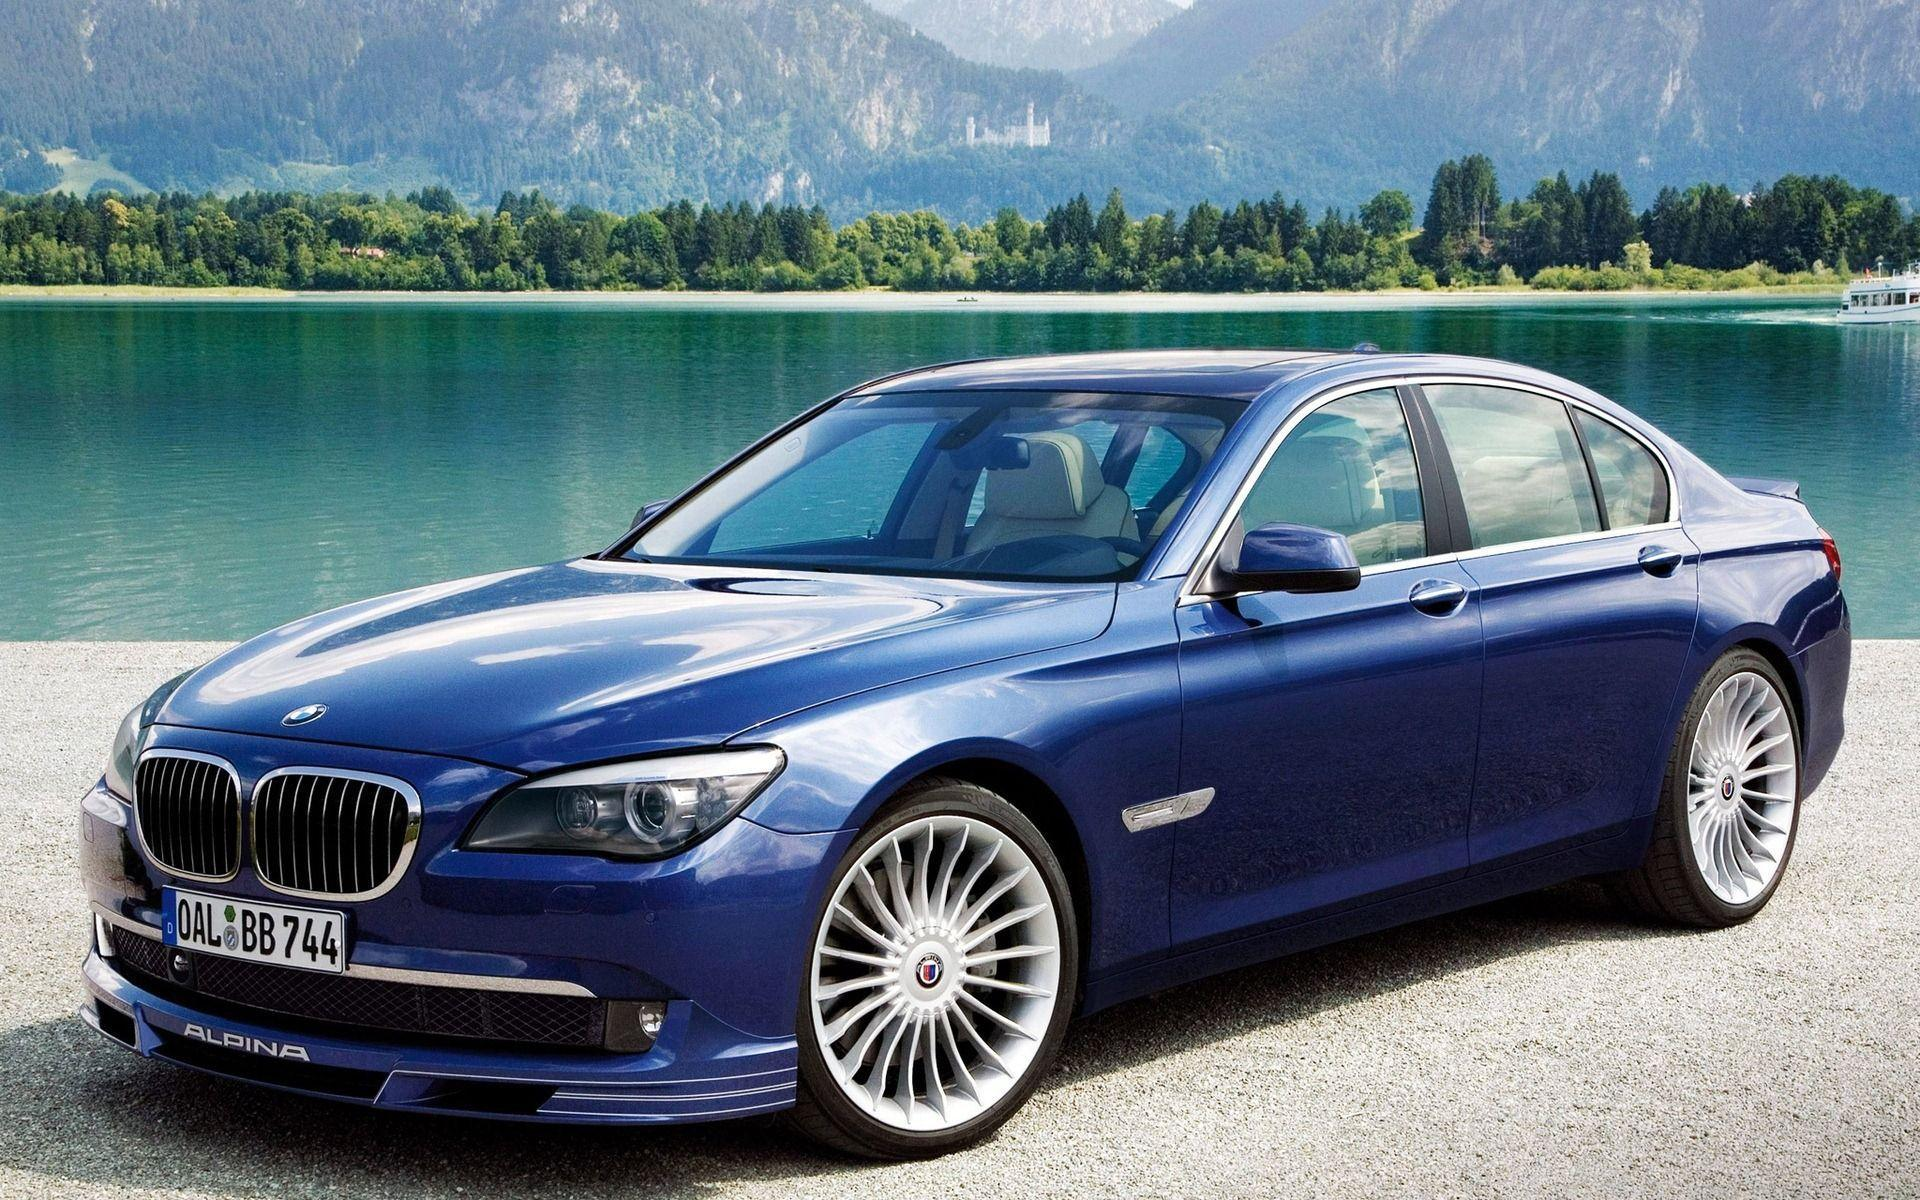 Hd Car Wallpapers Bmw | HD Wallpapers P